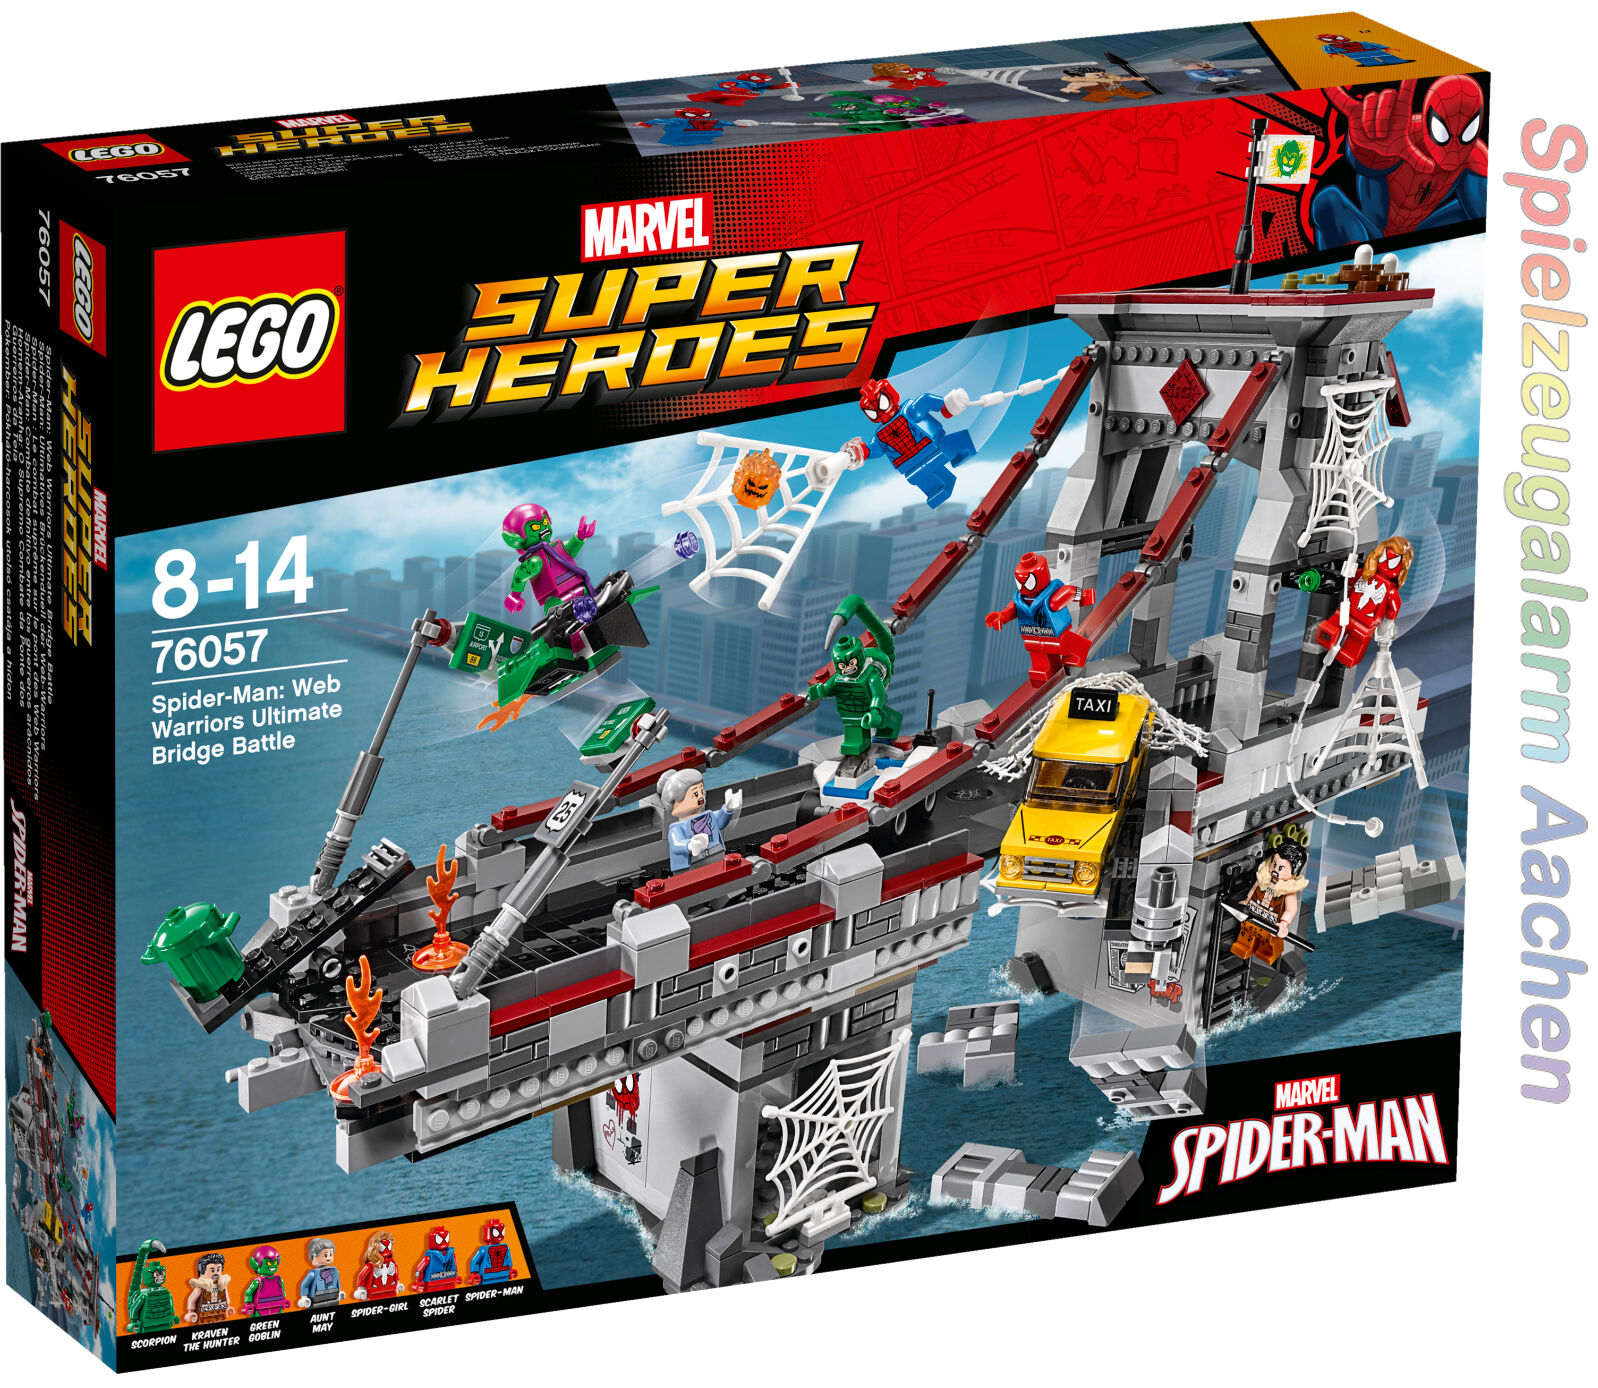 LEGO LEGO LEGO Marvel Super Heroes 76057 Spider Man Ultimatives Brückenduell N6 16 b49e6f